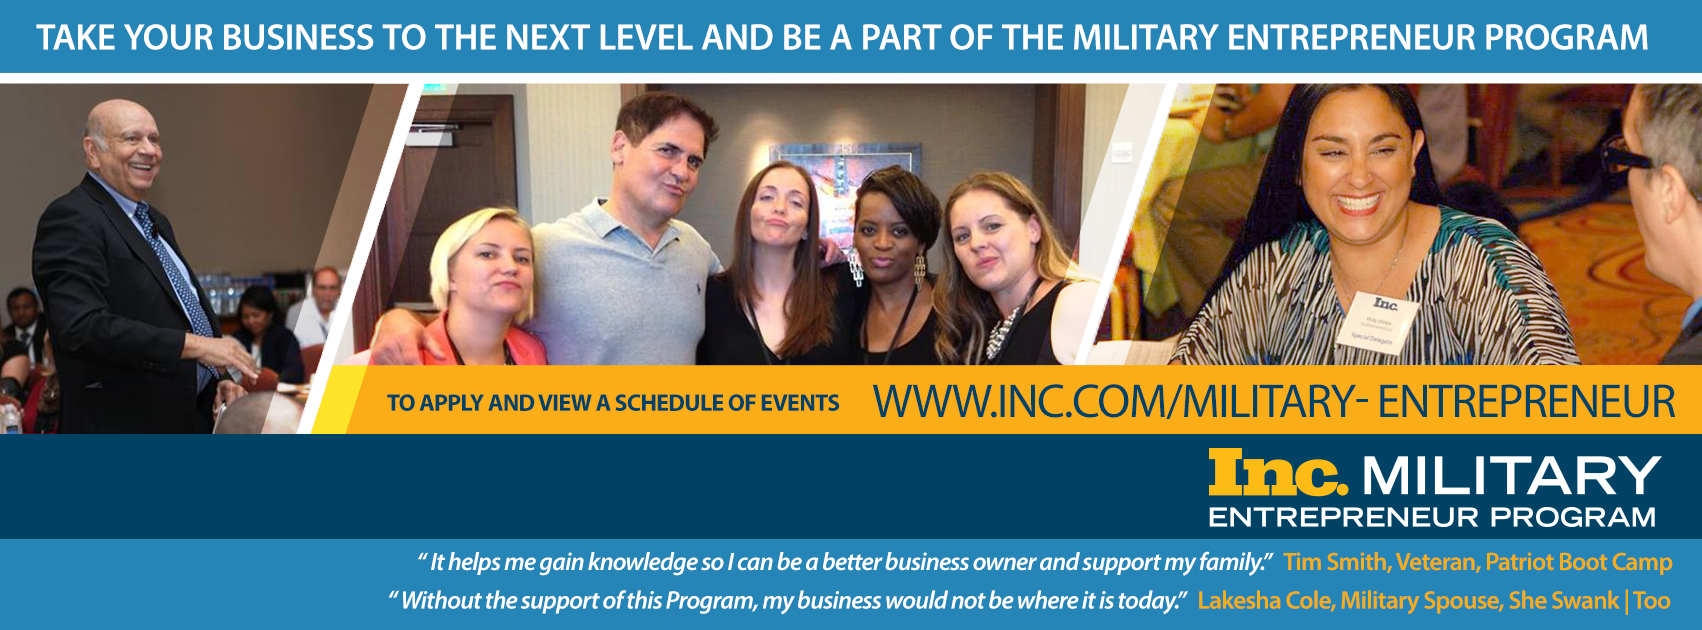 As a military spouse owned company, we are proud members of the Inc. Military Entrepreneur Program, and grateful for the opportunity to design their marketing and event materials. McNeese Thomas Group. and Inc. Magazine created this program in 2011 to help veterans, service members, and their families begin their own businesses through mentorships and regional events. Learn more by clicking the image above, and by joining their Facebook group, @Military Entrepreneur Program.